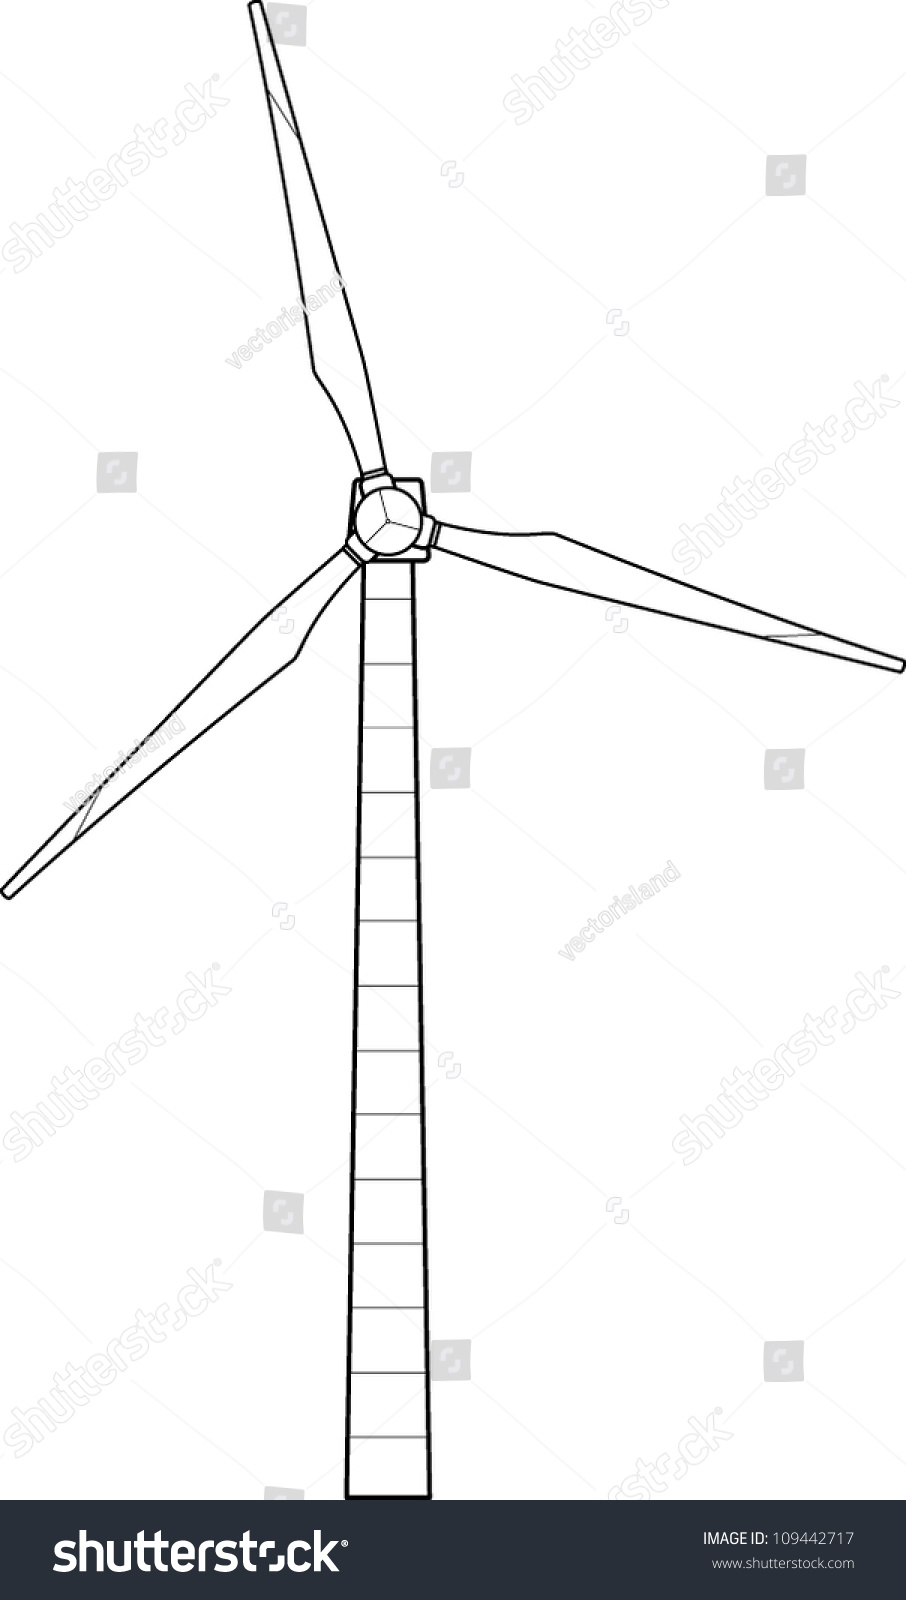 Line Drawing Windmill : Wind turbine line art stock vector shutterstock